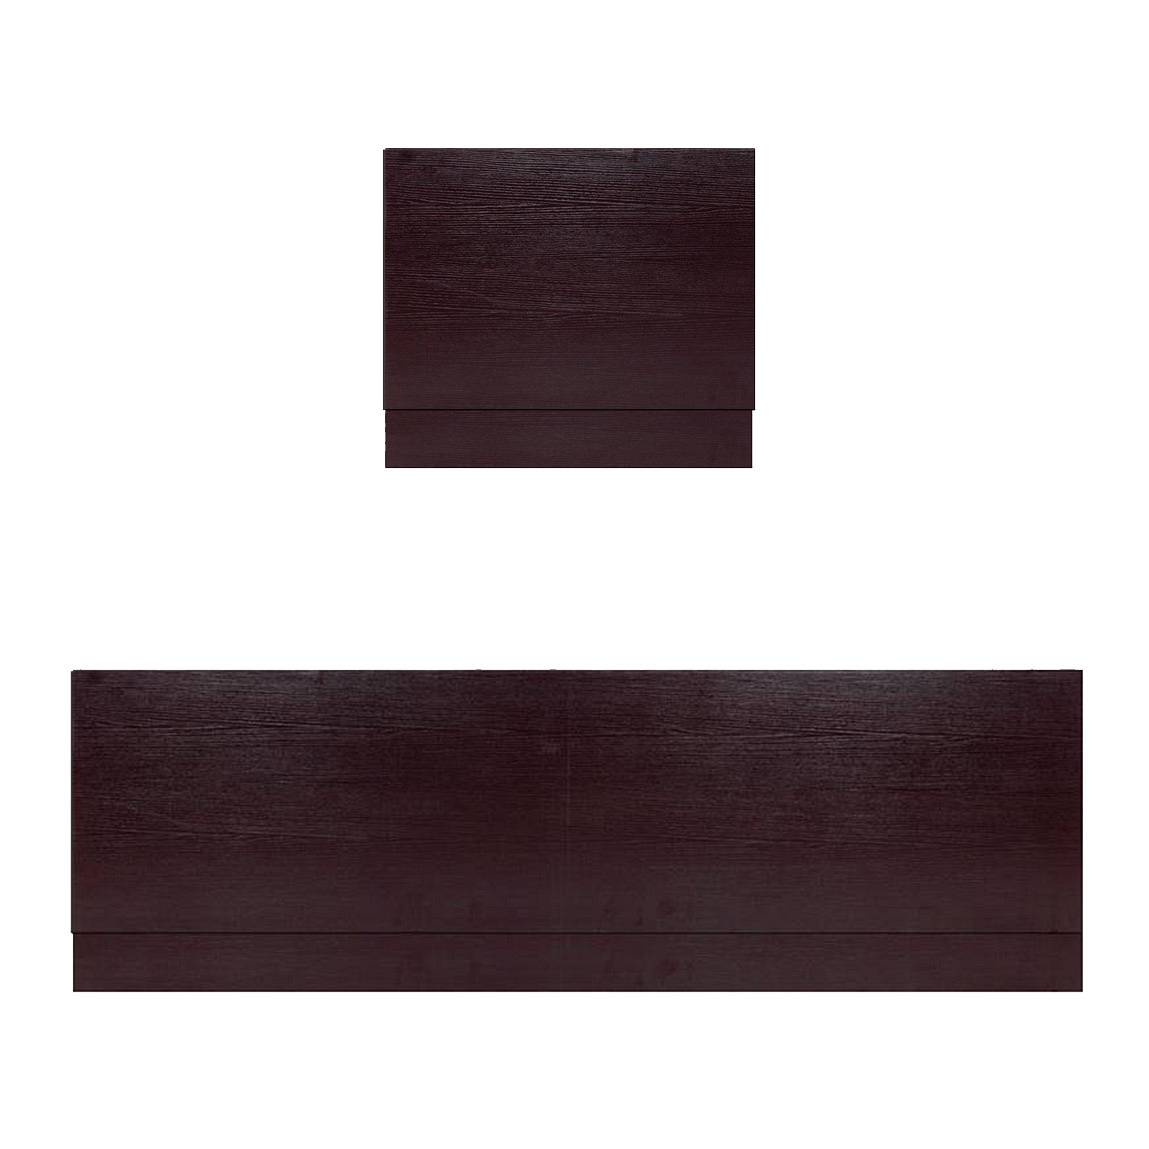 Image of Wenge Effect Straight Bath Panel Pack 1700 x 700